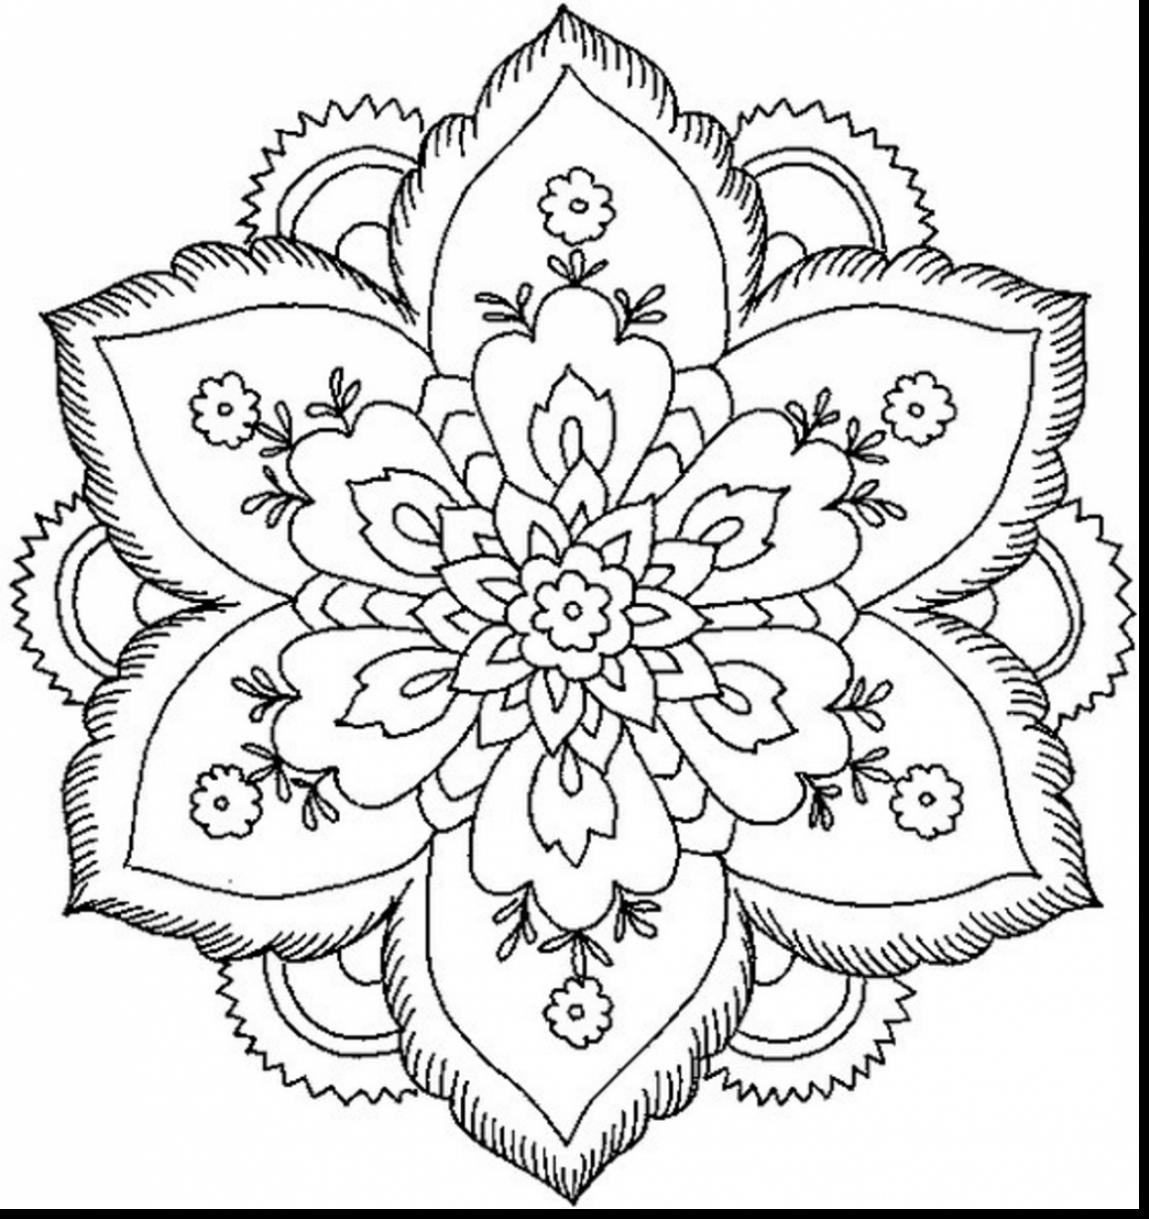 1149x1219 Flower Mandala Coloring Page Free Pages Online